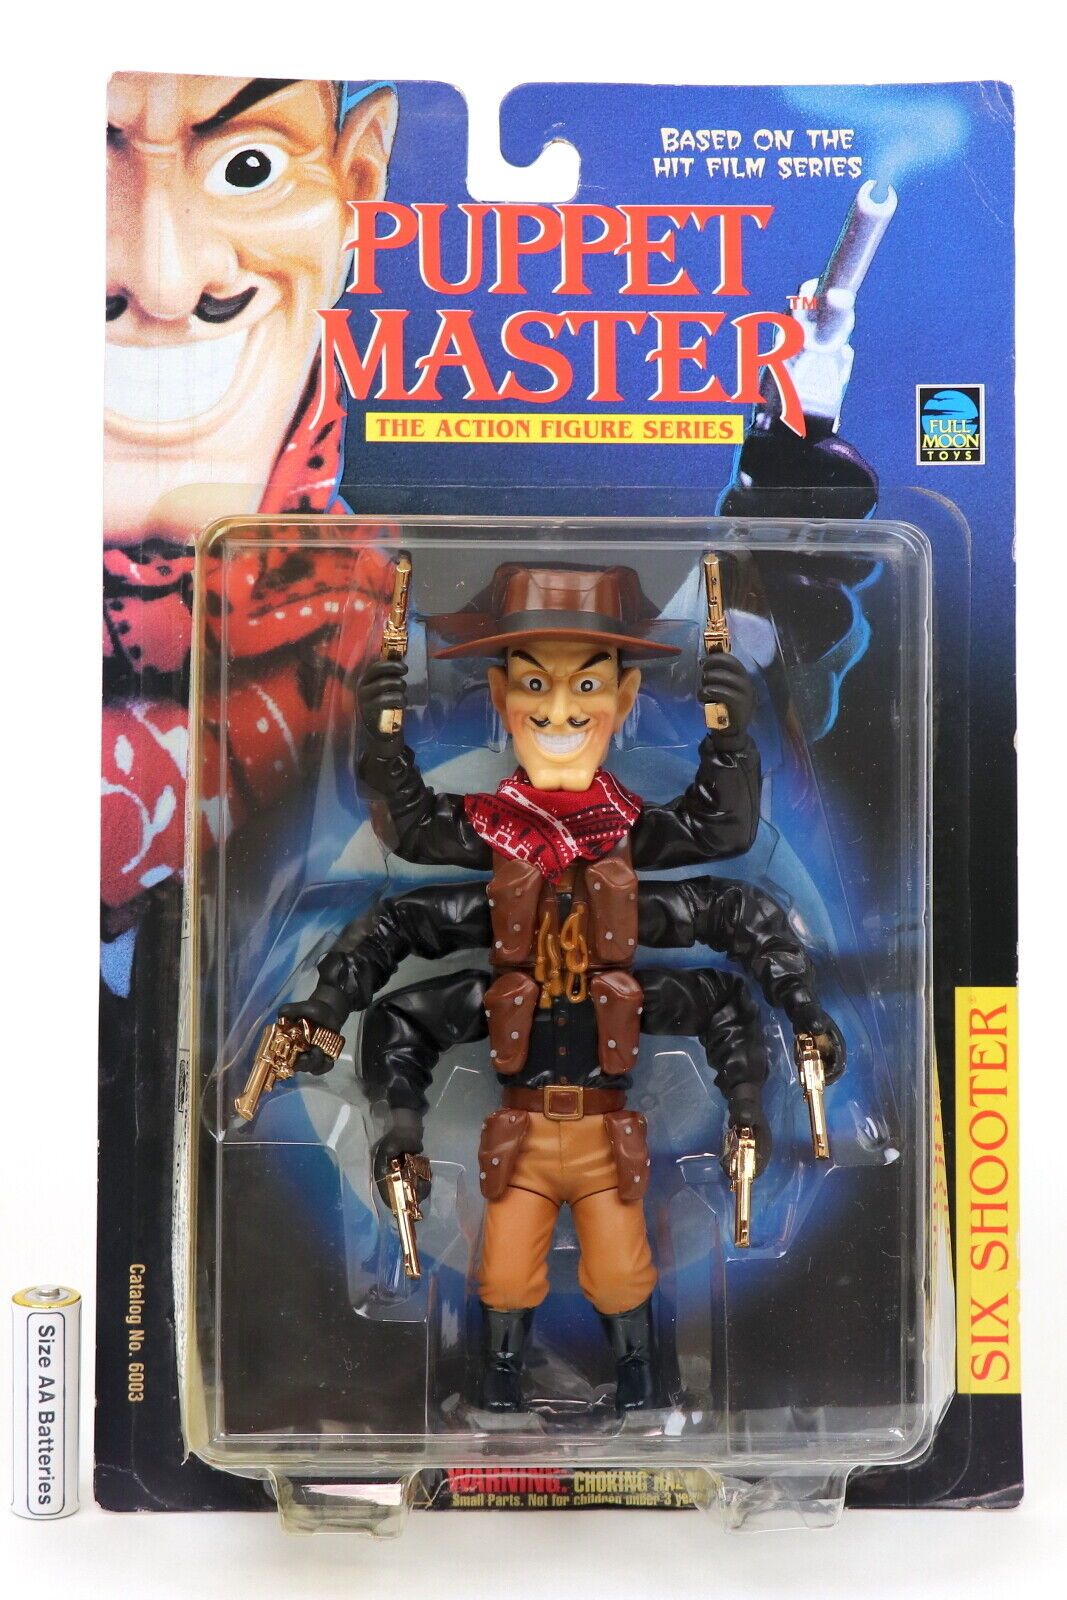 PUPPET MASTER SIX SHOOTER (Japan Release  Limited) FULL MOON TOYS Medicom Toy JP  100% authentique